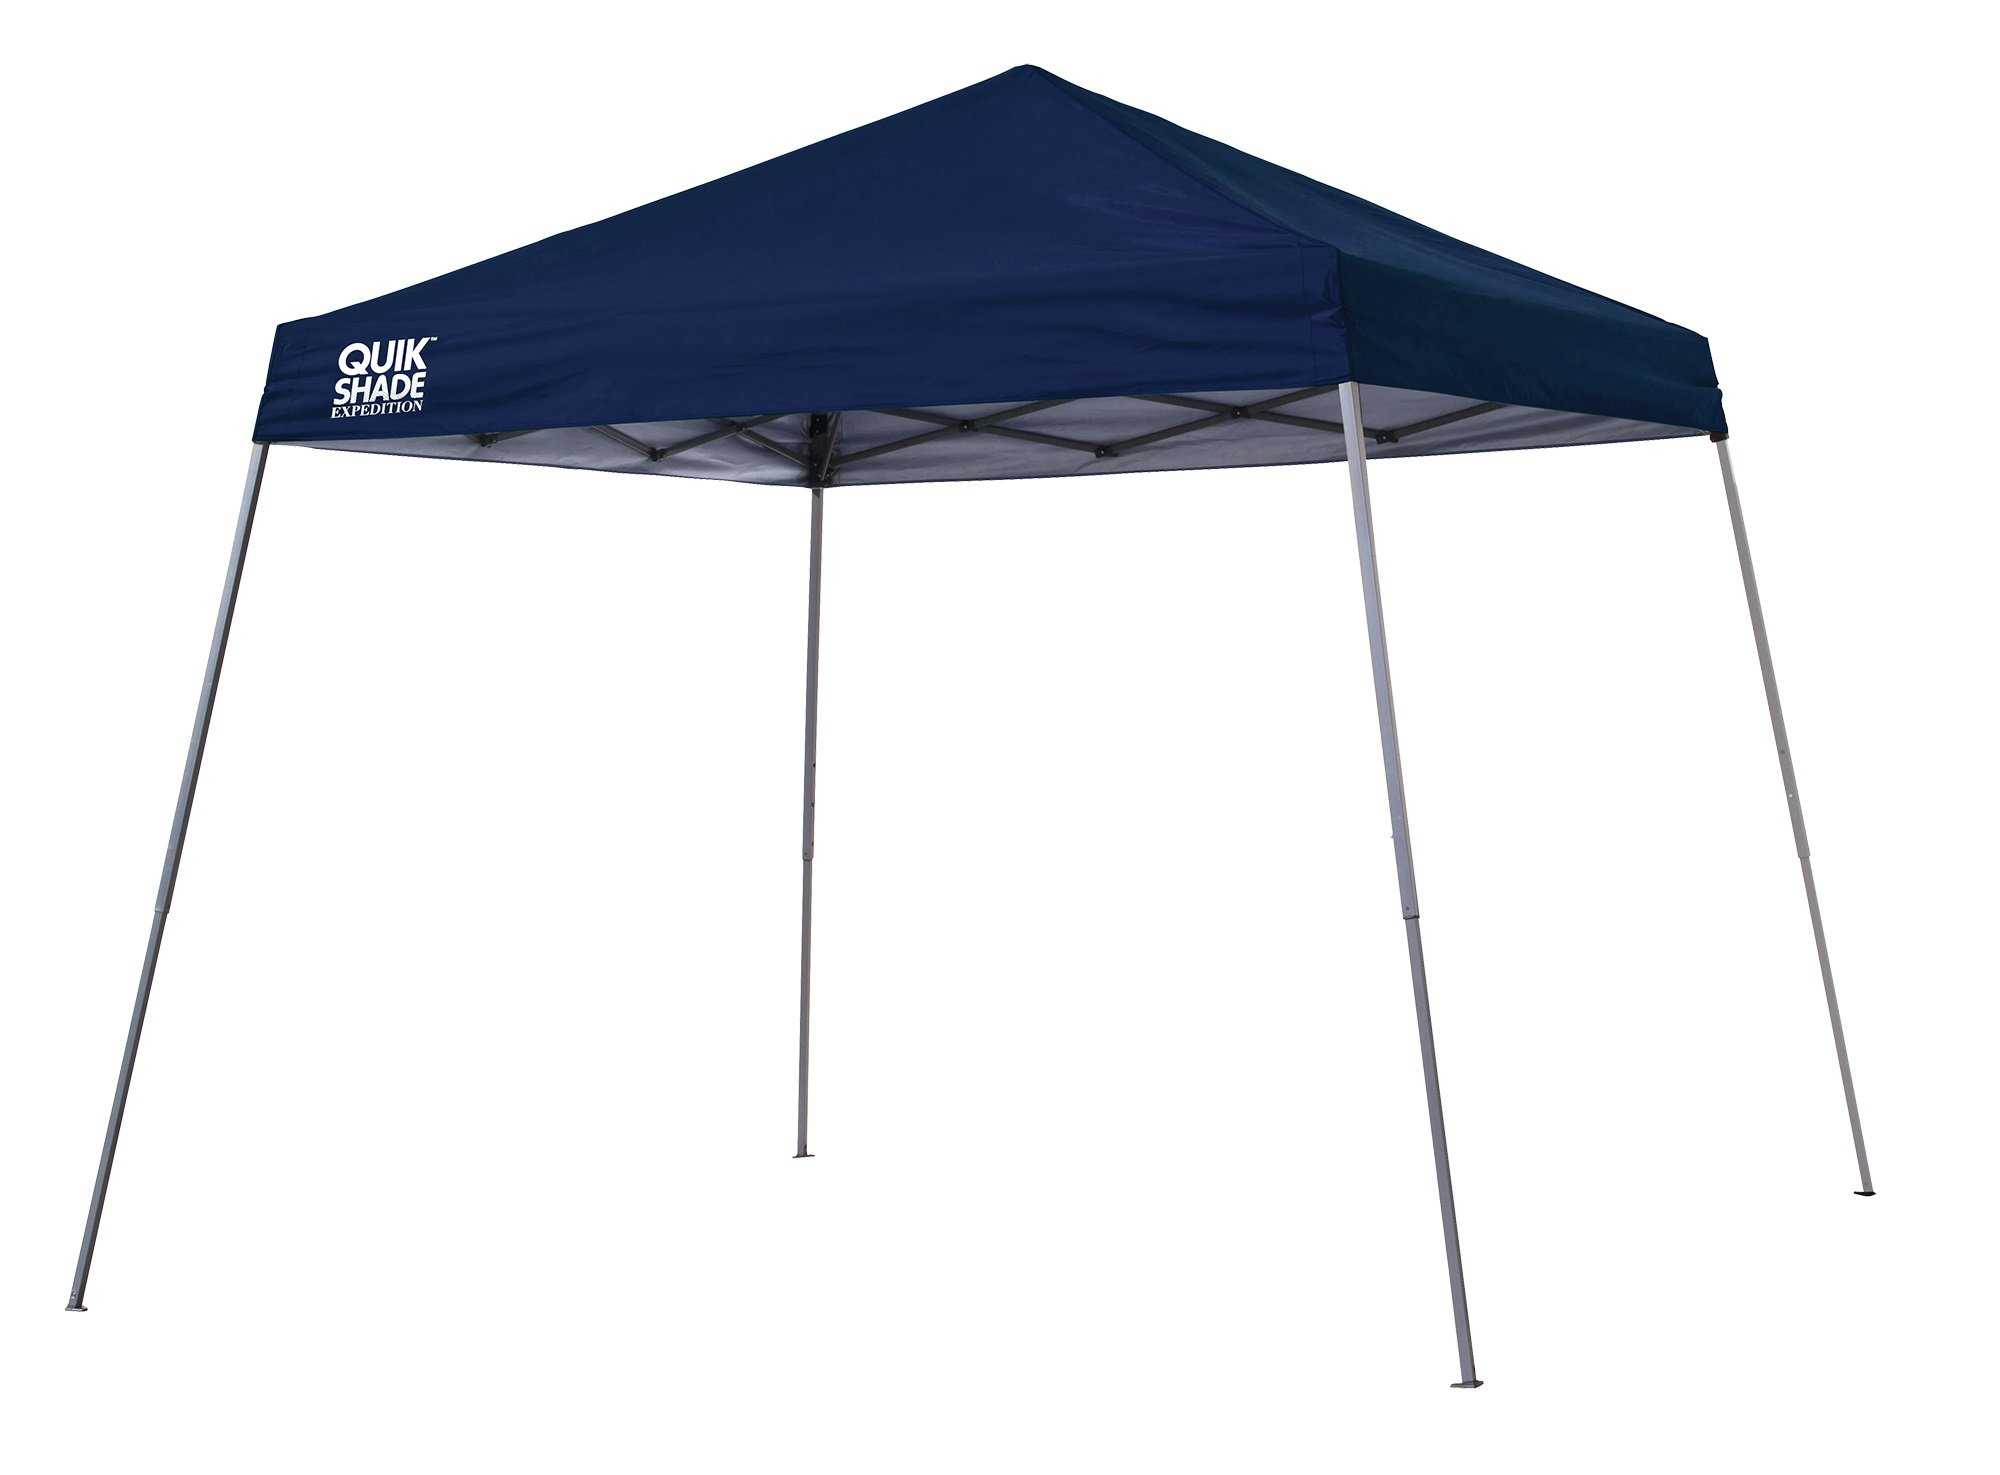 Quik Shade Expedition 12 x 12 ft. Slant Leg Canopy, Twilight Blue by Quik Shade